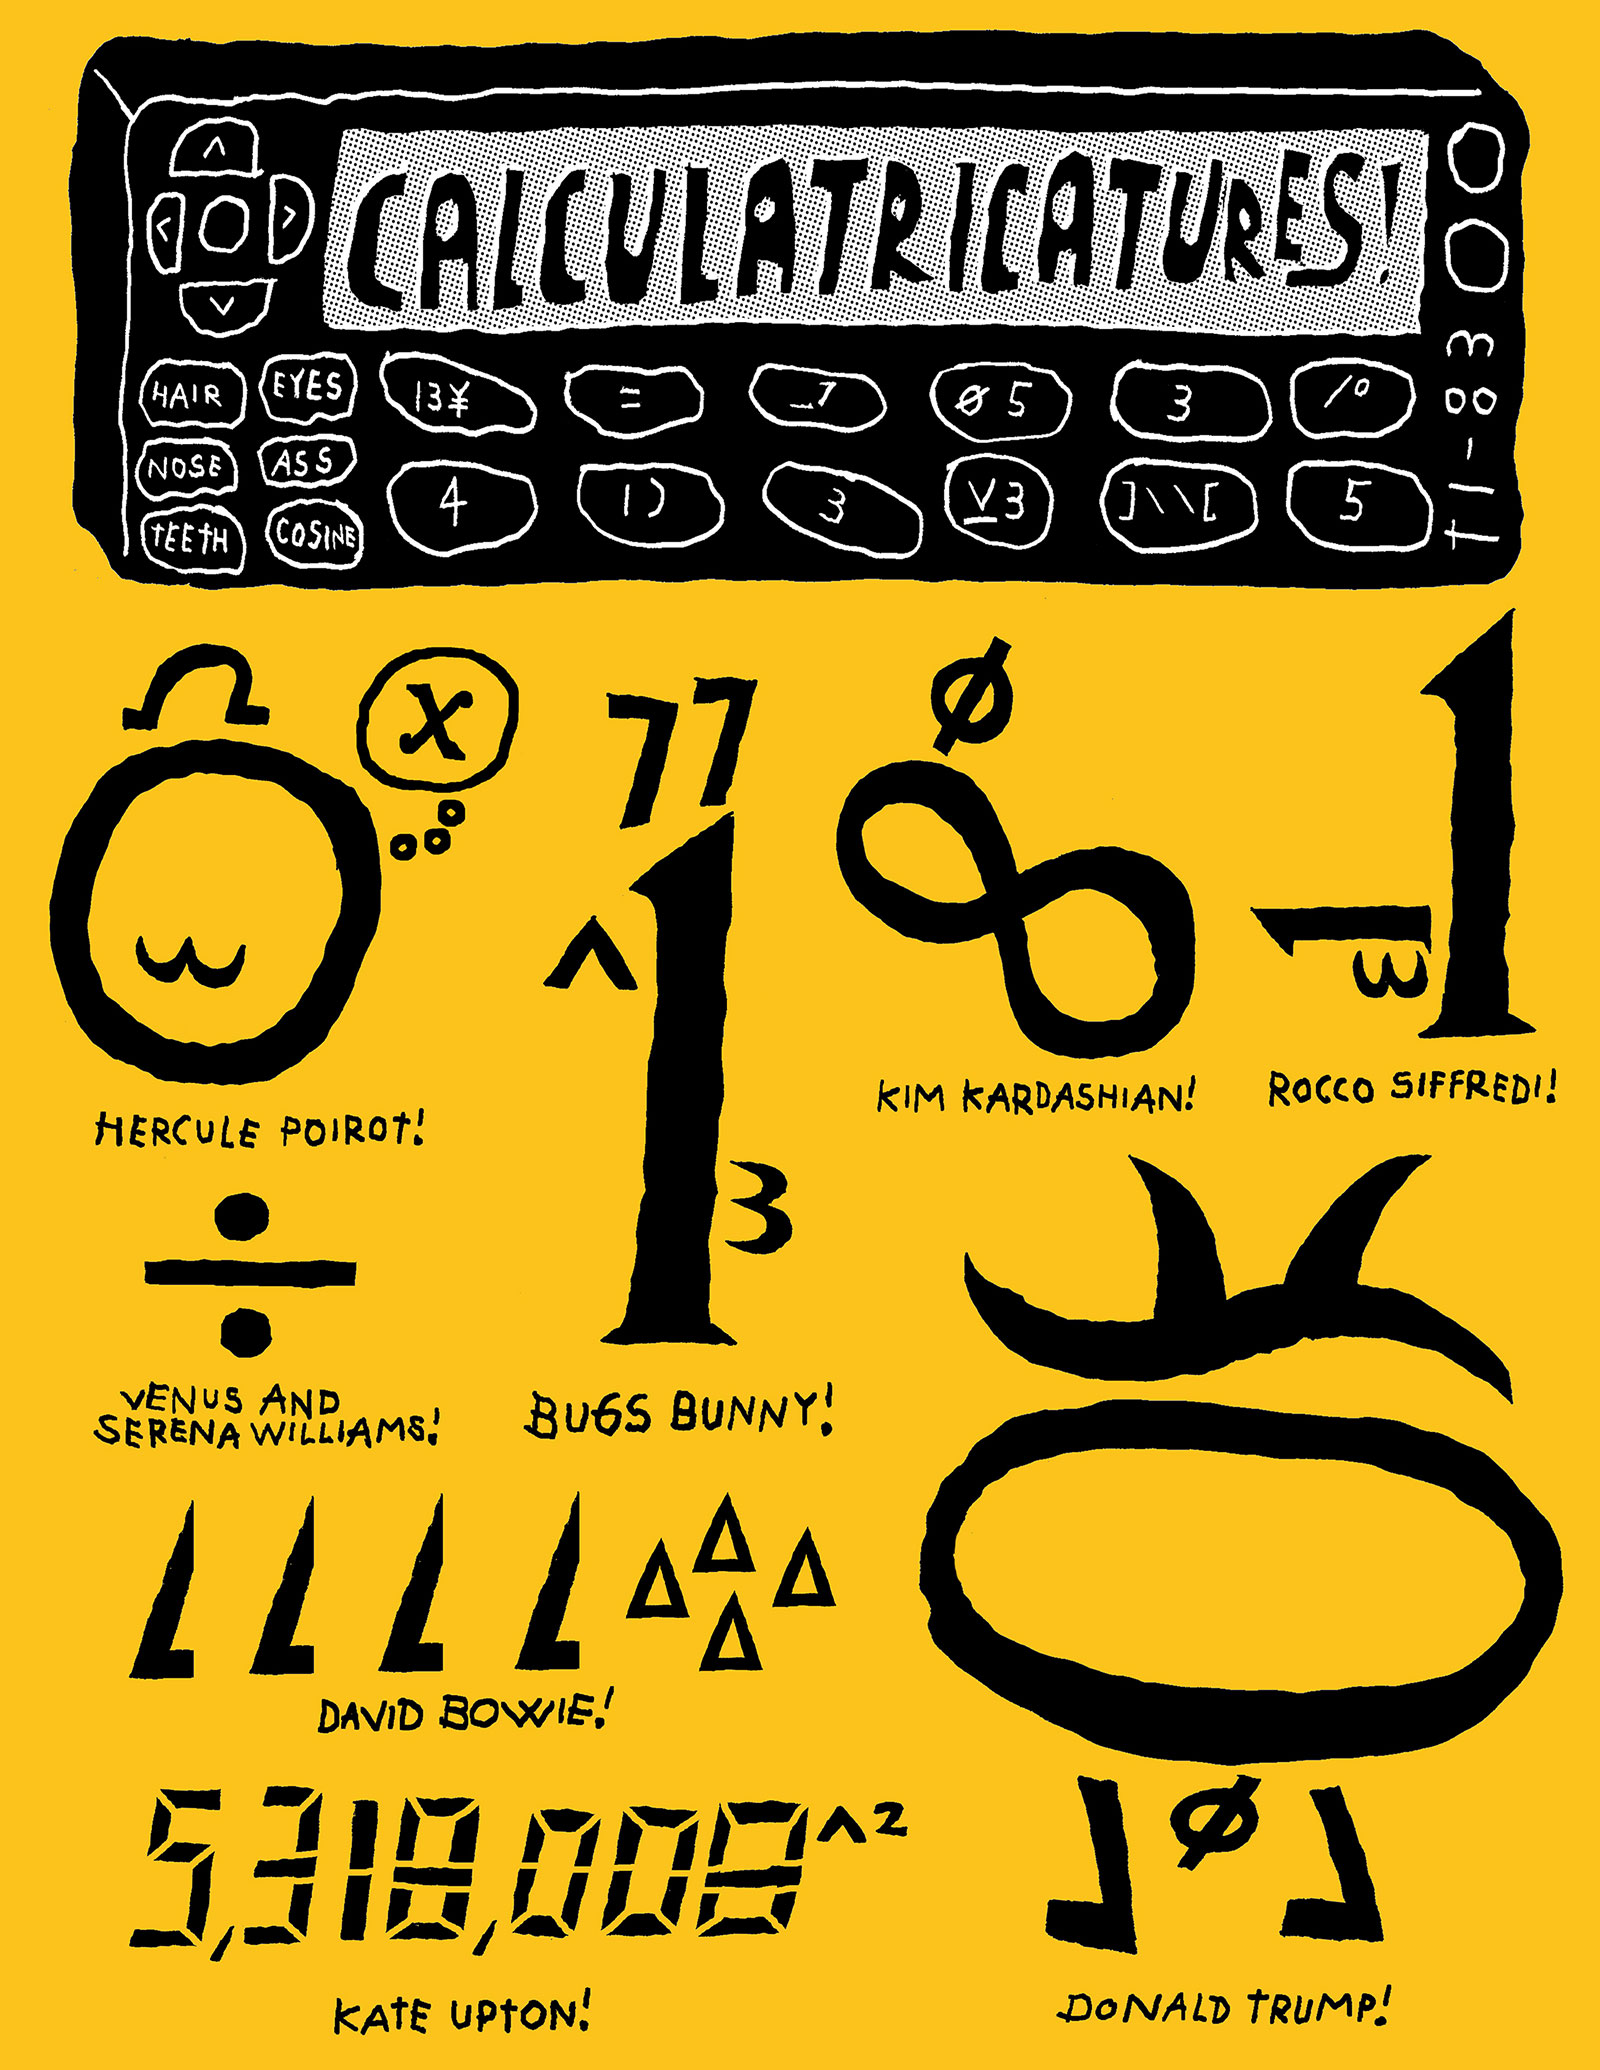 Calculatricatures!